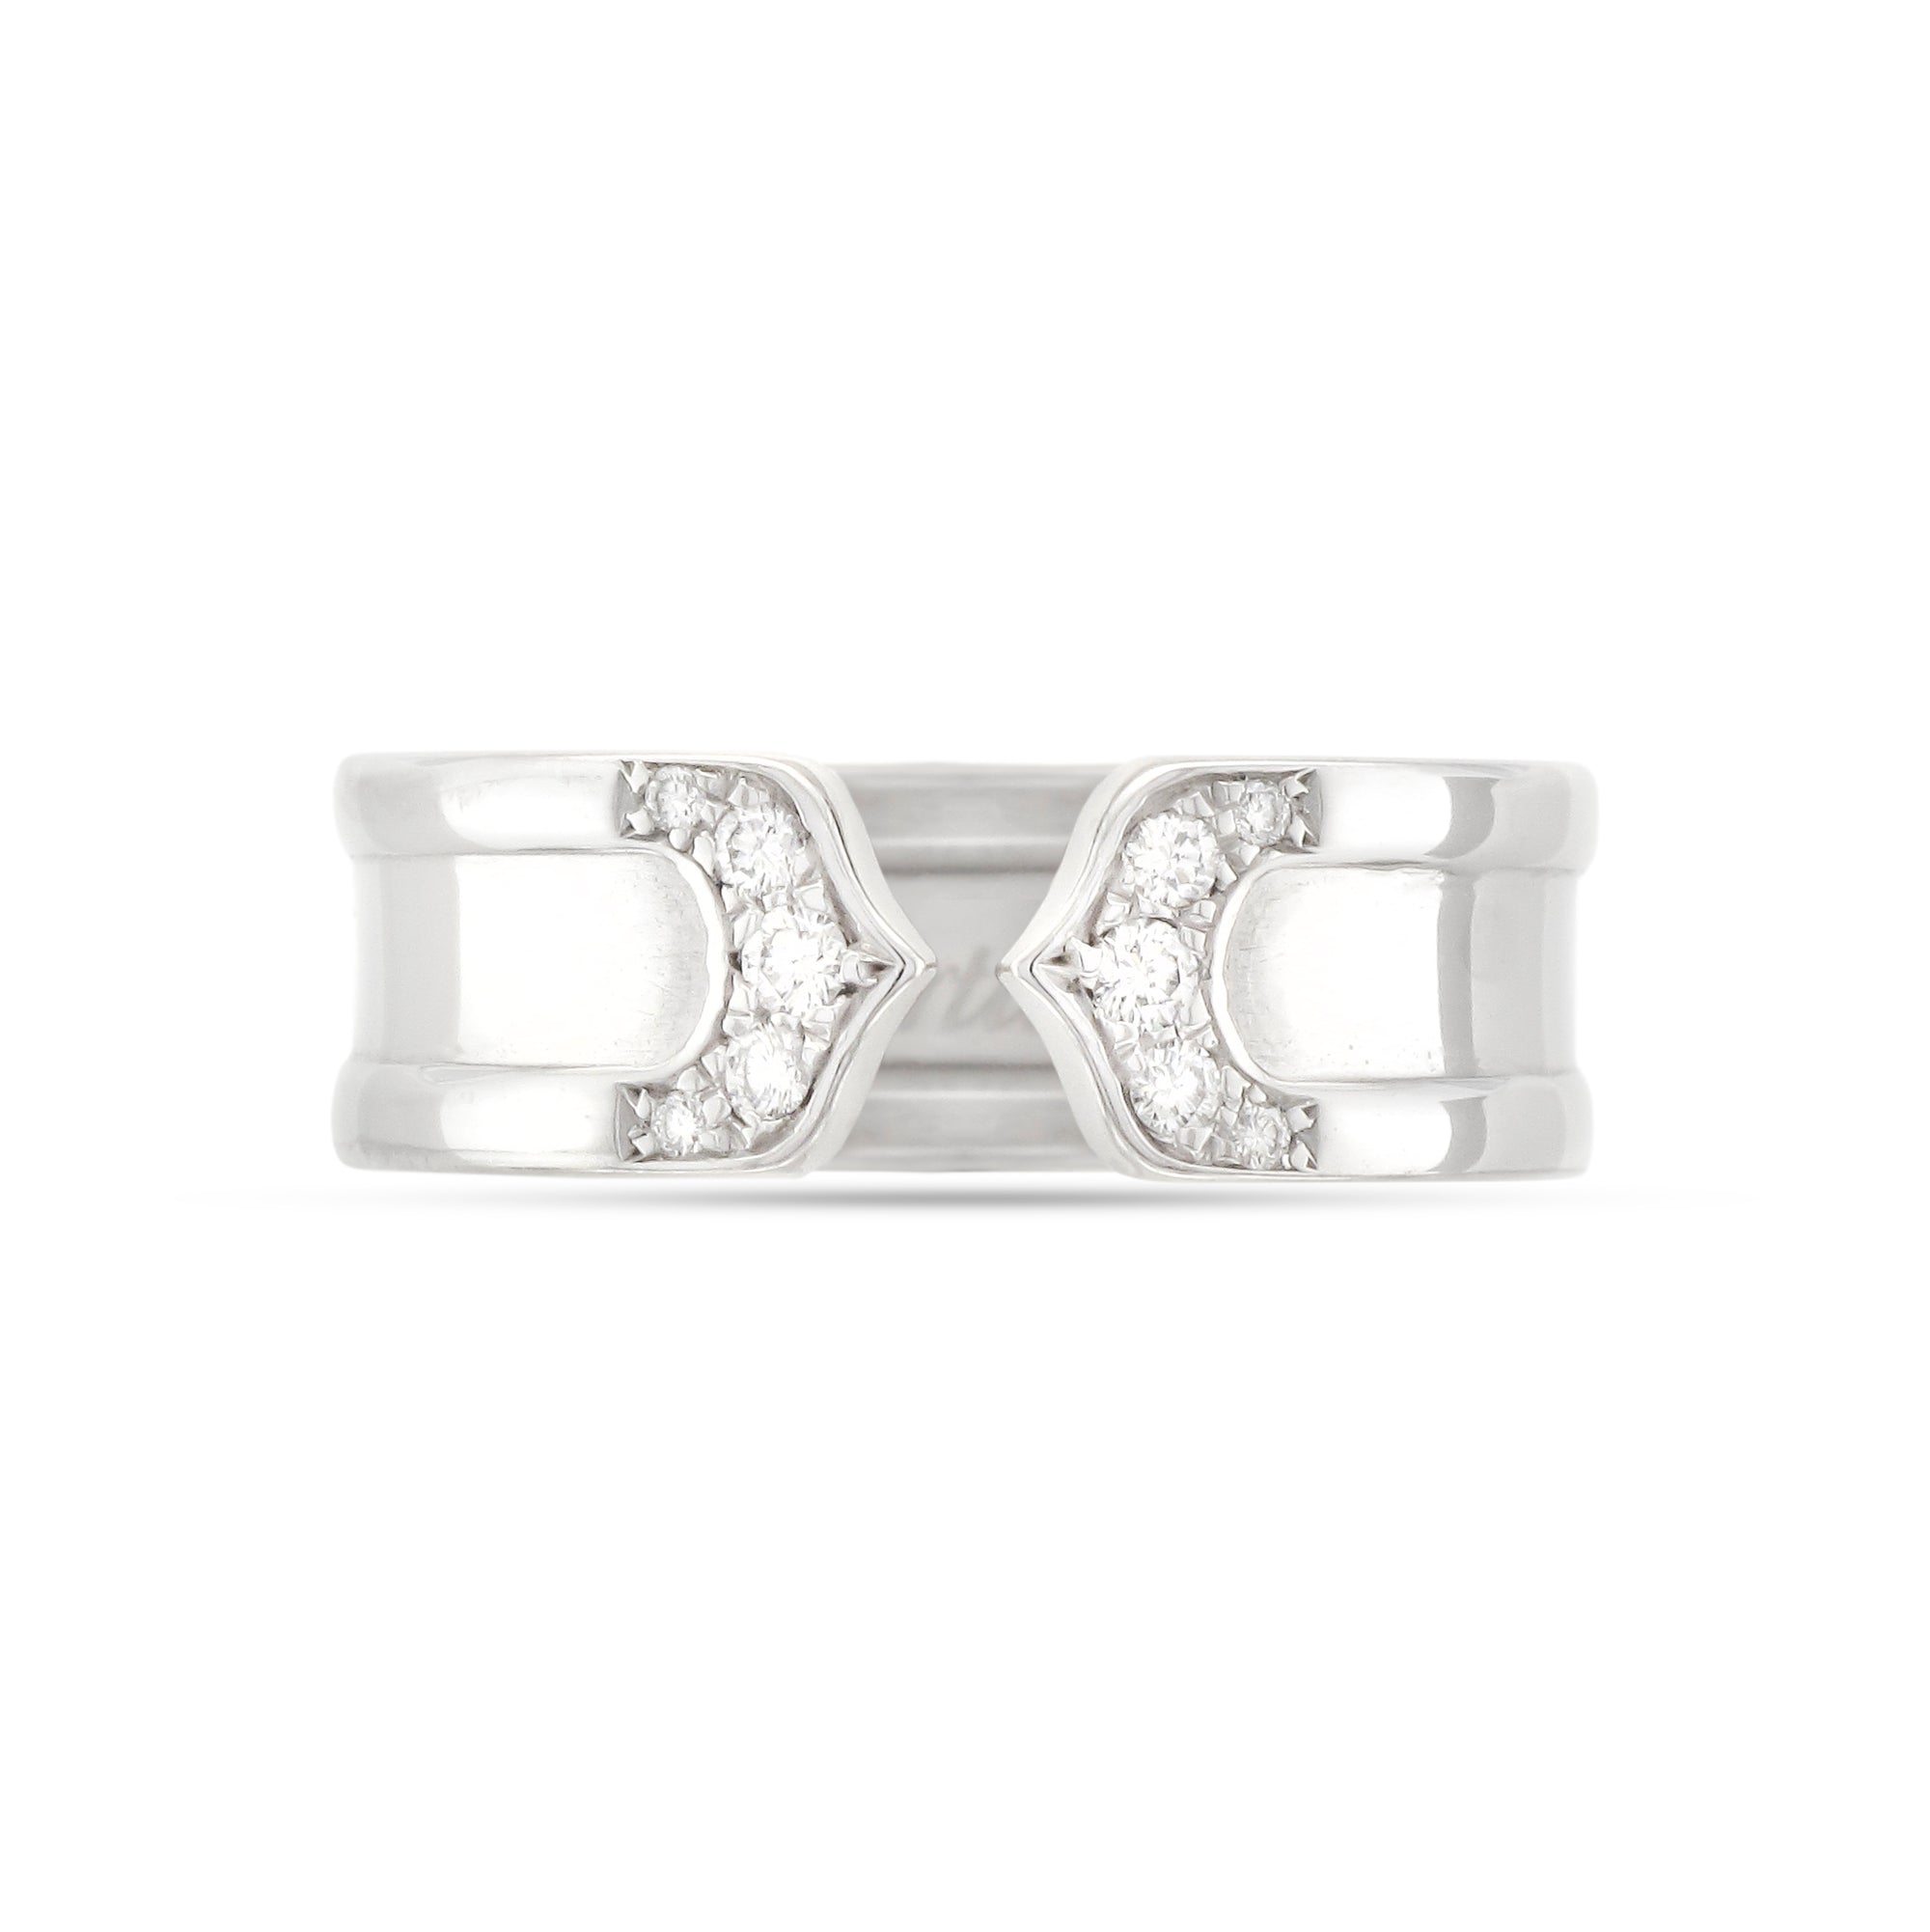 Cartier 18ct White Gold Double C Diamond Ring